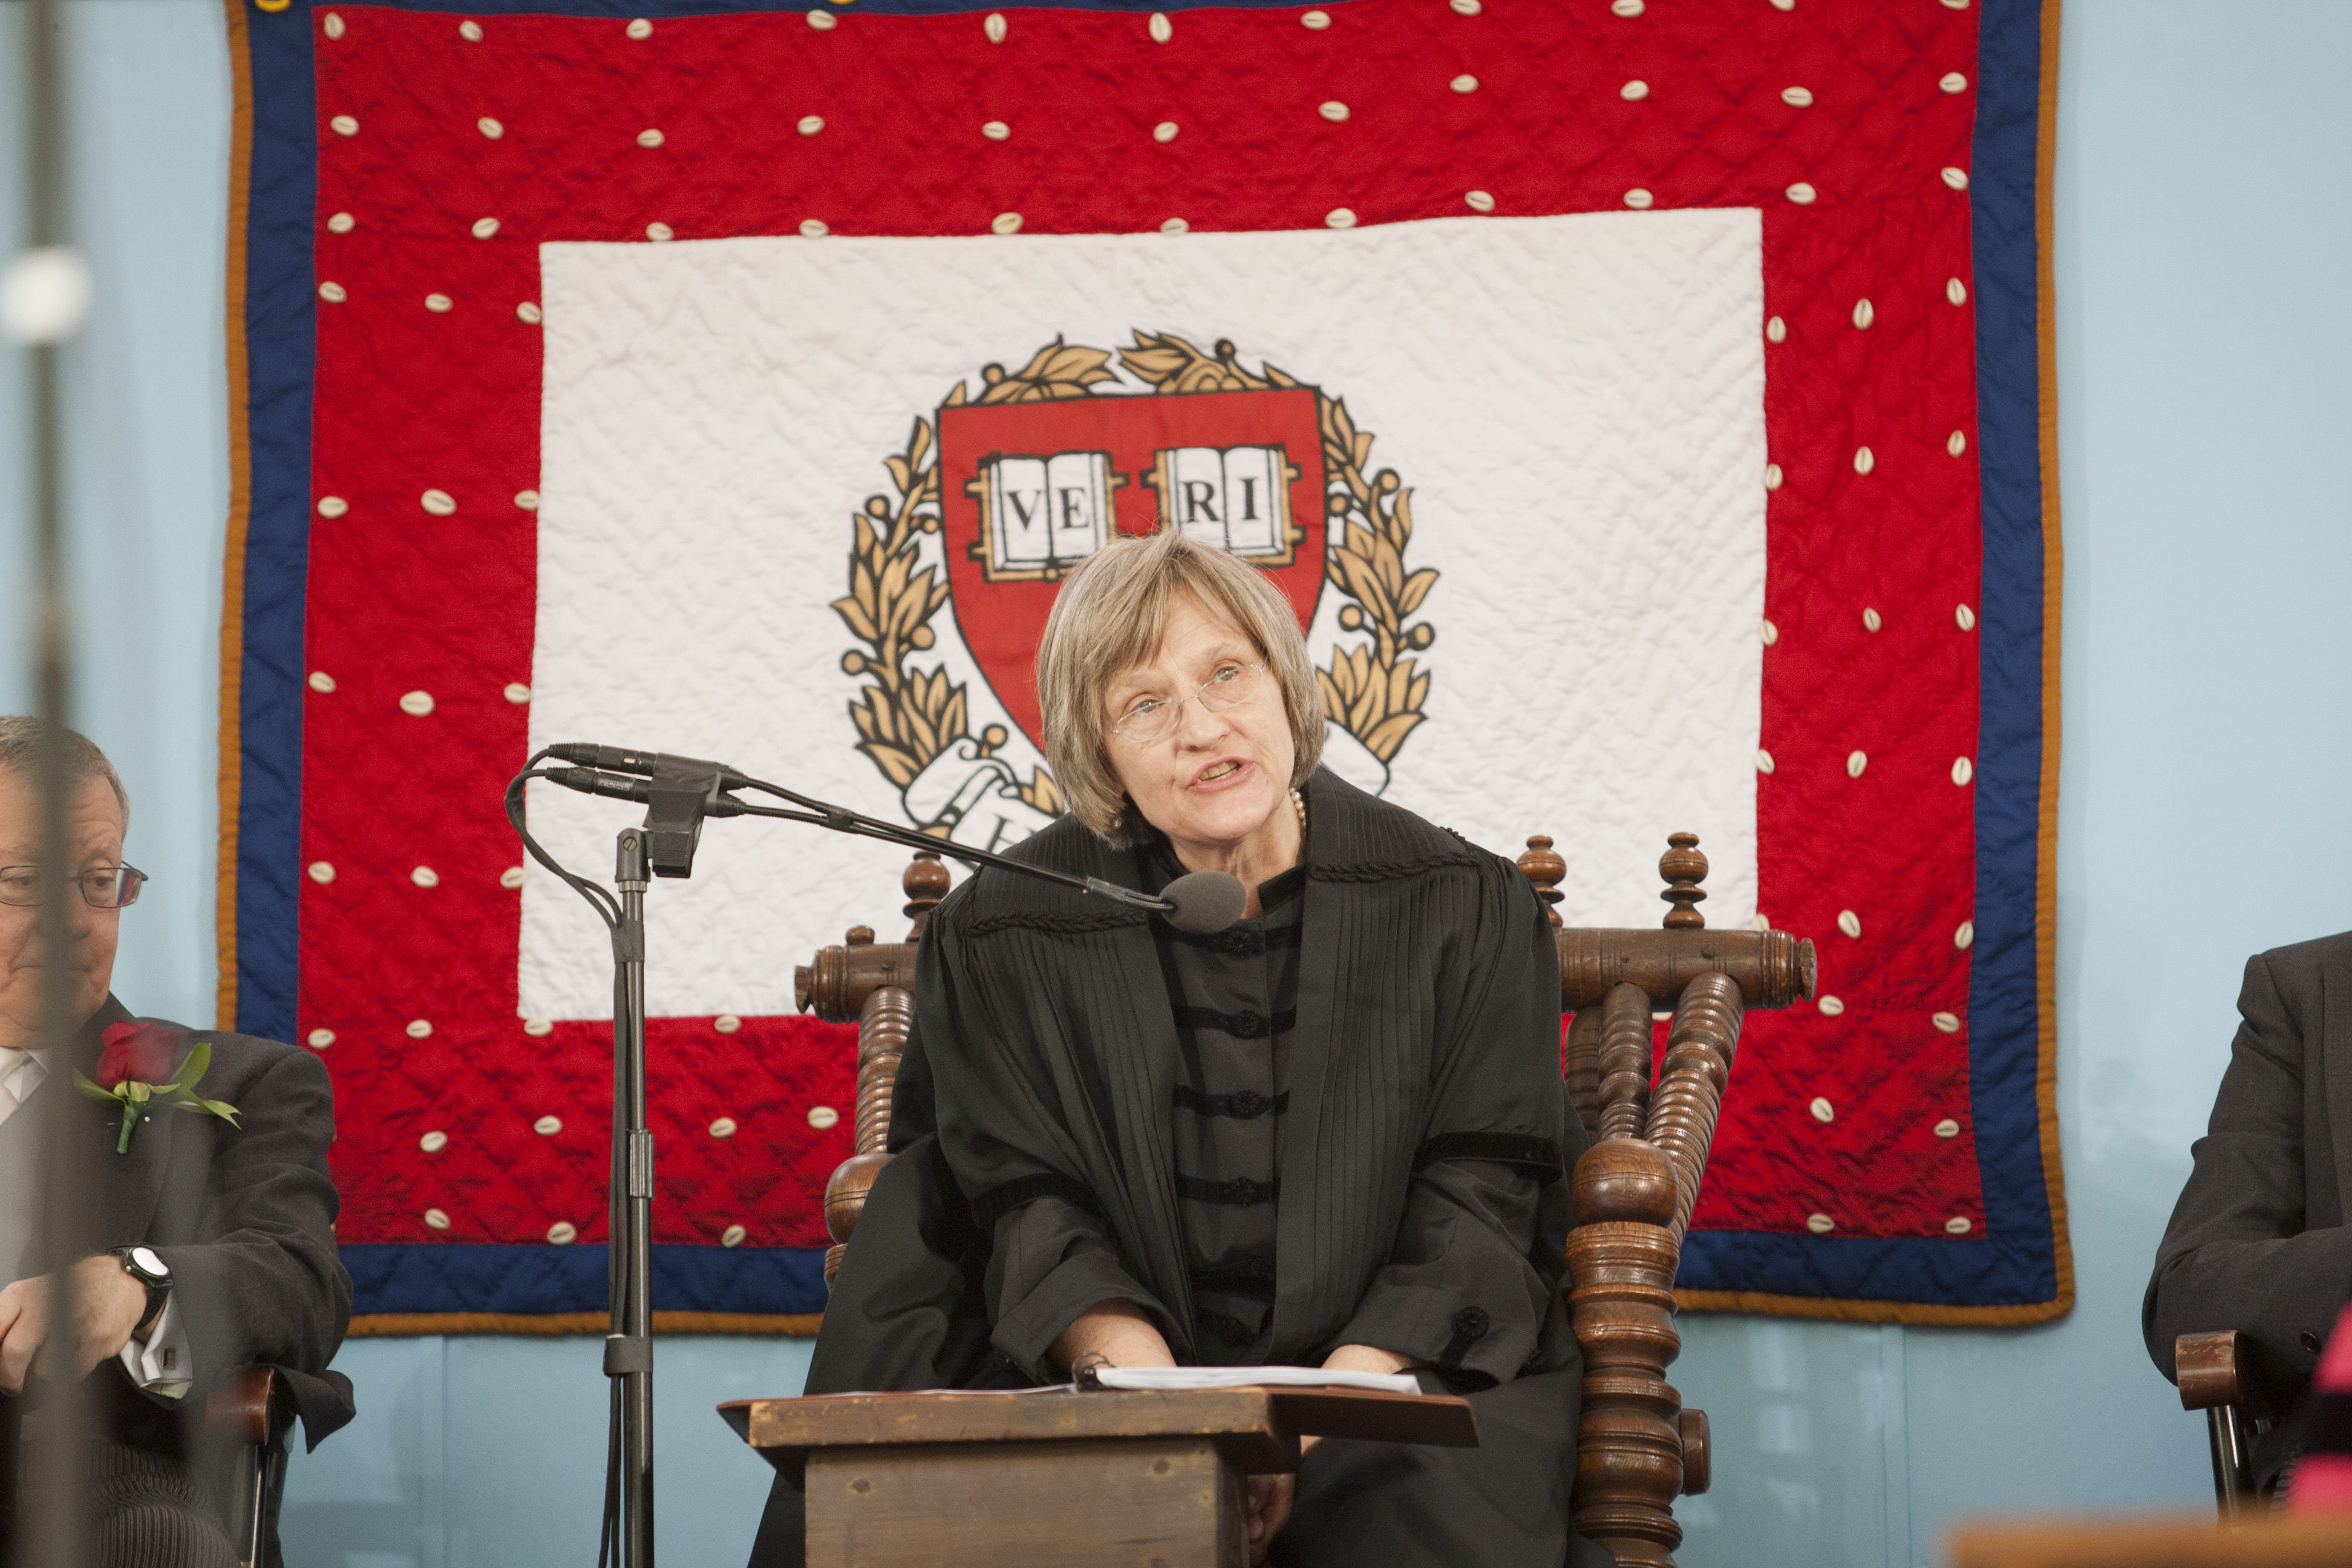 """Drew Gilpin Faust sits in a wooden chair (the President's Chair) wearing black robes and speaking into a microphone. In front of her is a small wooden table that appears to have pieces of paper on top of it. In the background hangs a quilt with a thin navy border on the outside and a wider red border with white dots on the inside. In the center of the quilt is a white rectangular block with an illustration of a red crest, surrounded by branches of yellow leaves. Two blocks of white in the shape of books are inside the crest; the first reads """"VE"""" and the second reads """"RI."""""""